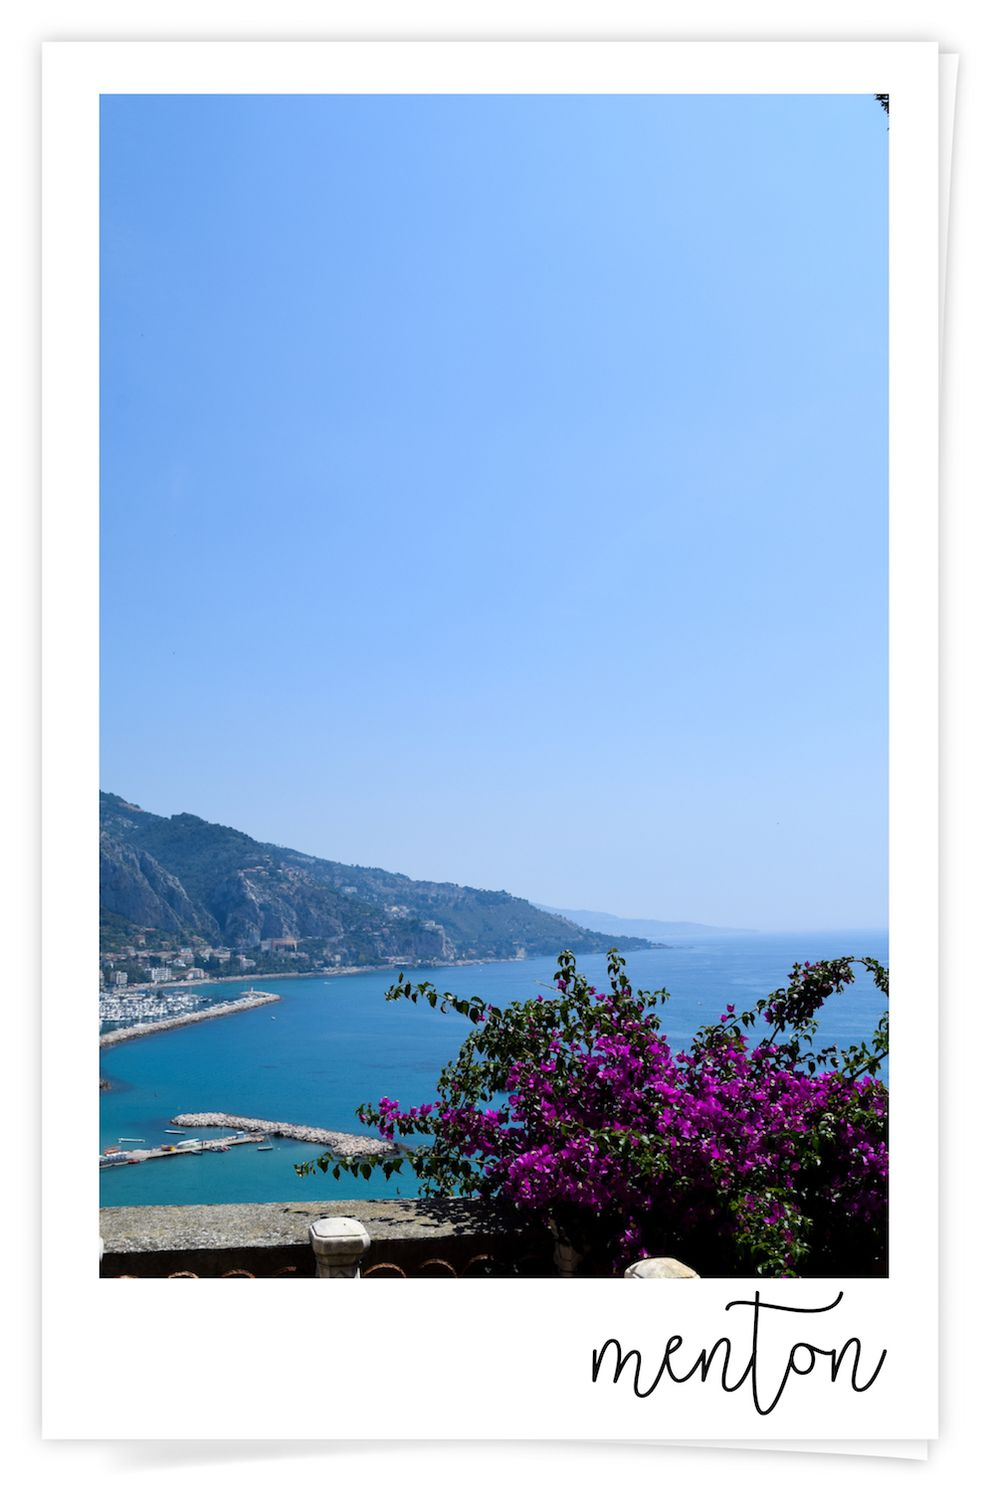 View of Menton, France